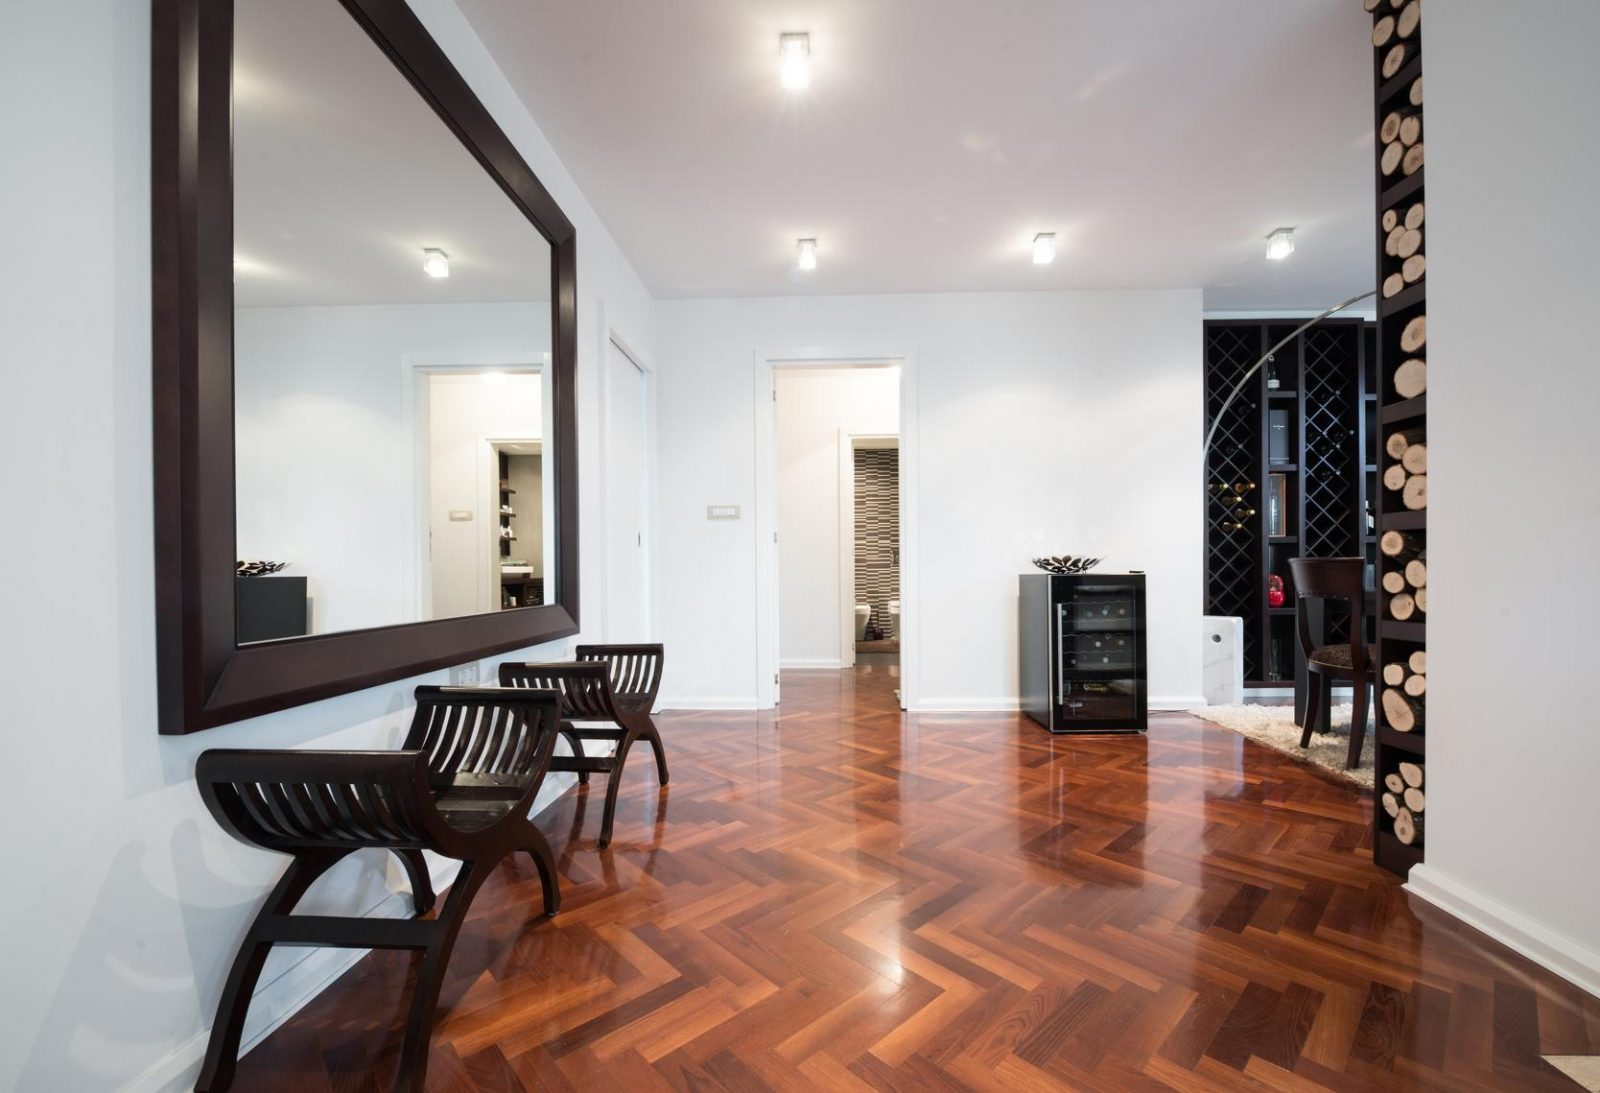 Spacious anteroom interior with large mirror and shiny brown parquet